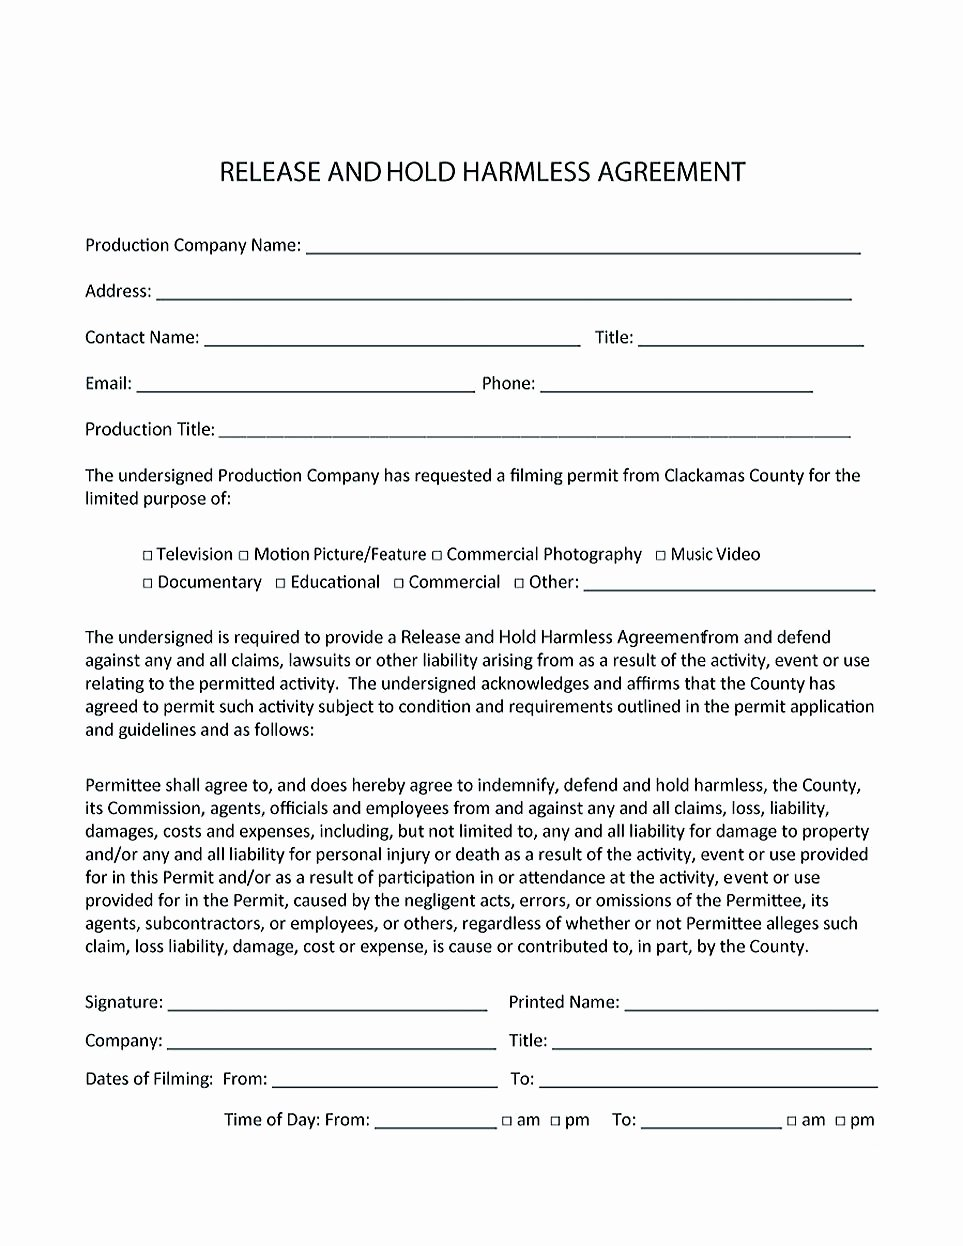 Hold Harmless Letter Template Awesome Making Hold Harmless Agreement Template for Different Purposes